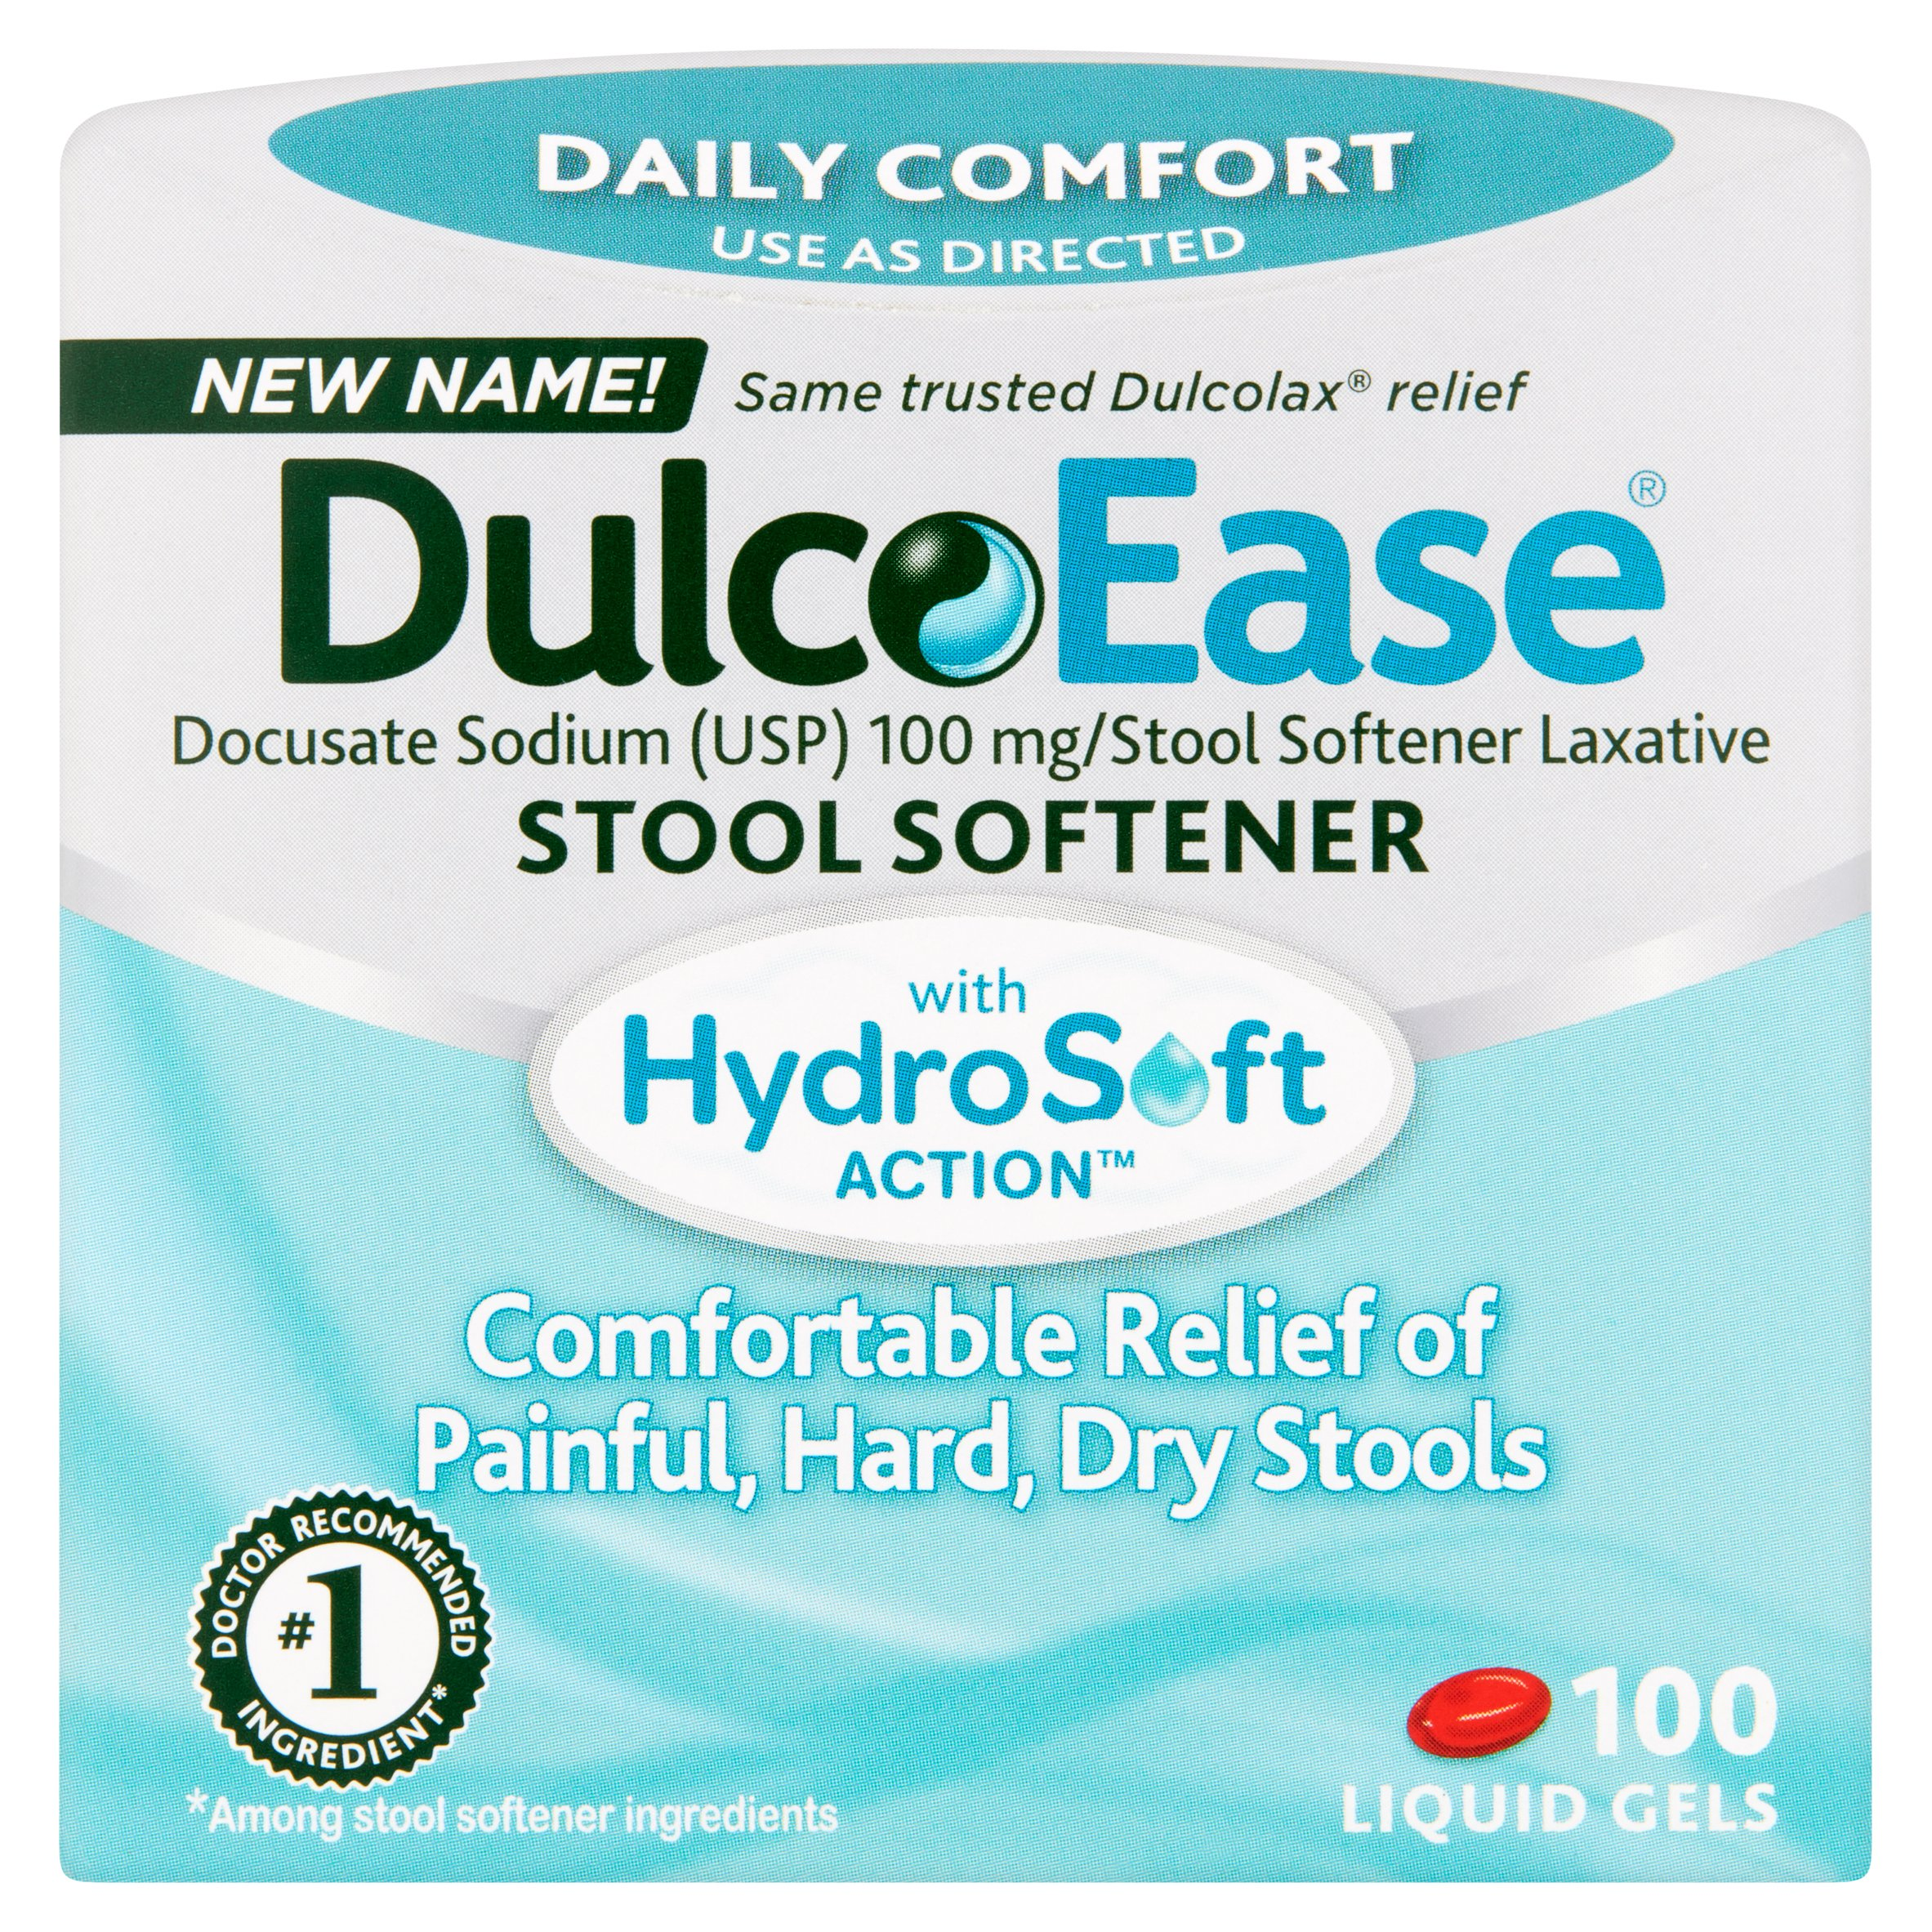 Colace Docusate Sodium Stool Softener 100mg 30 Count